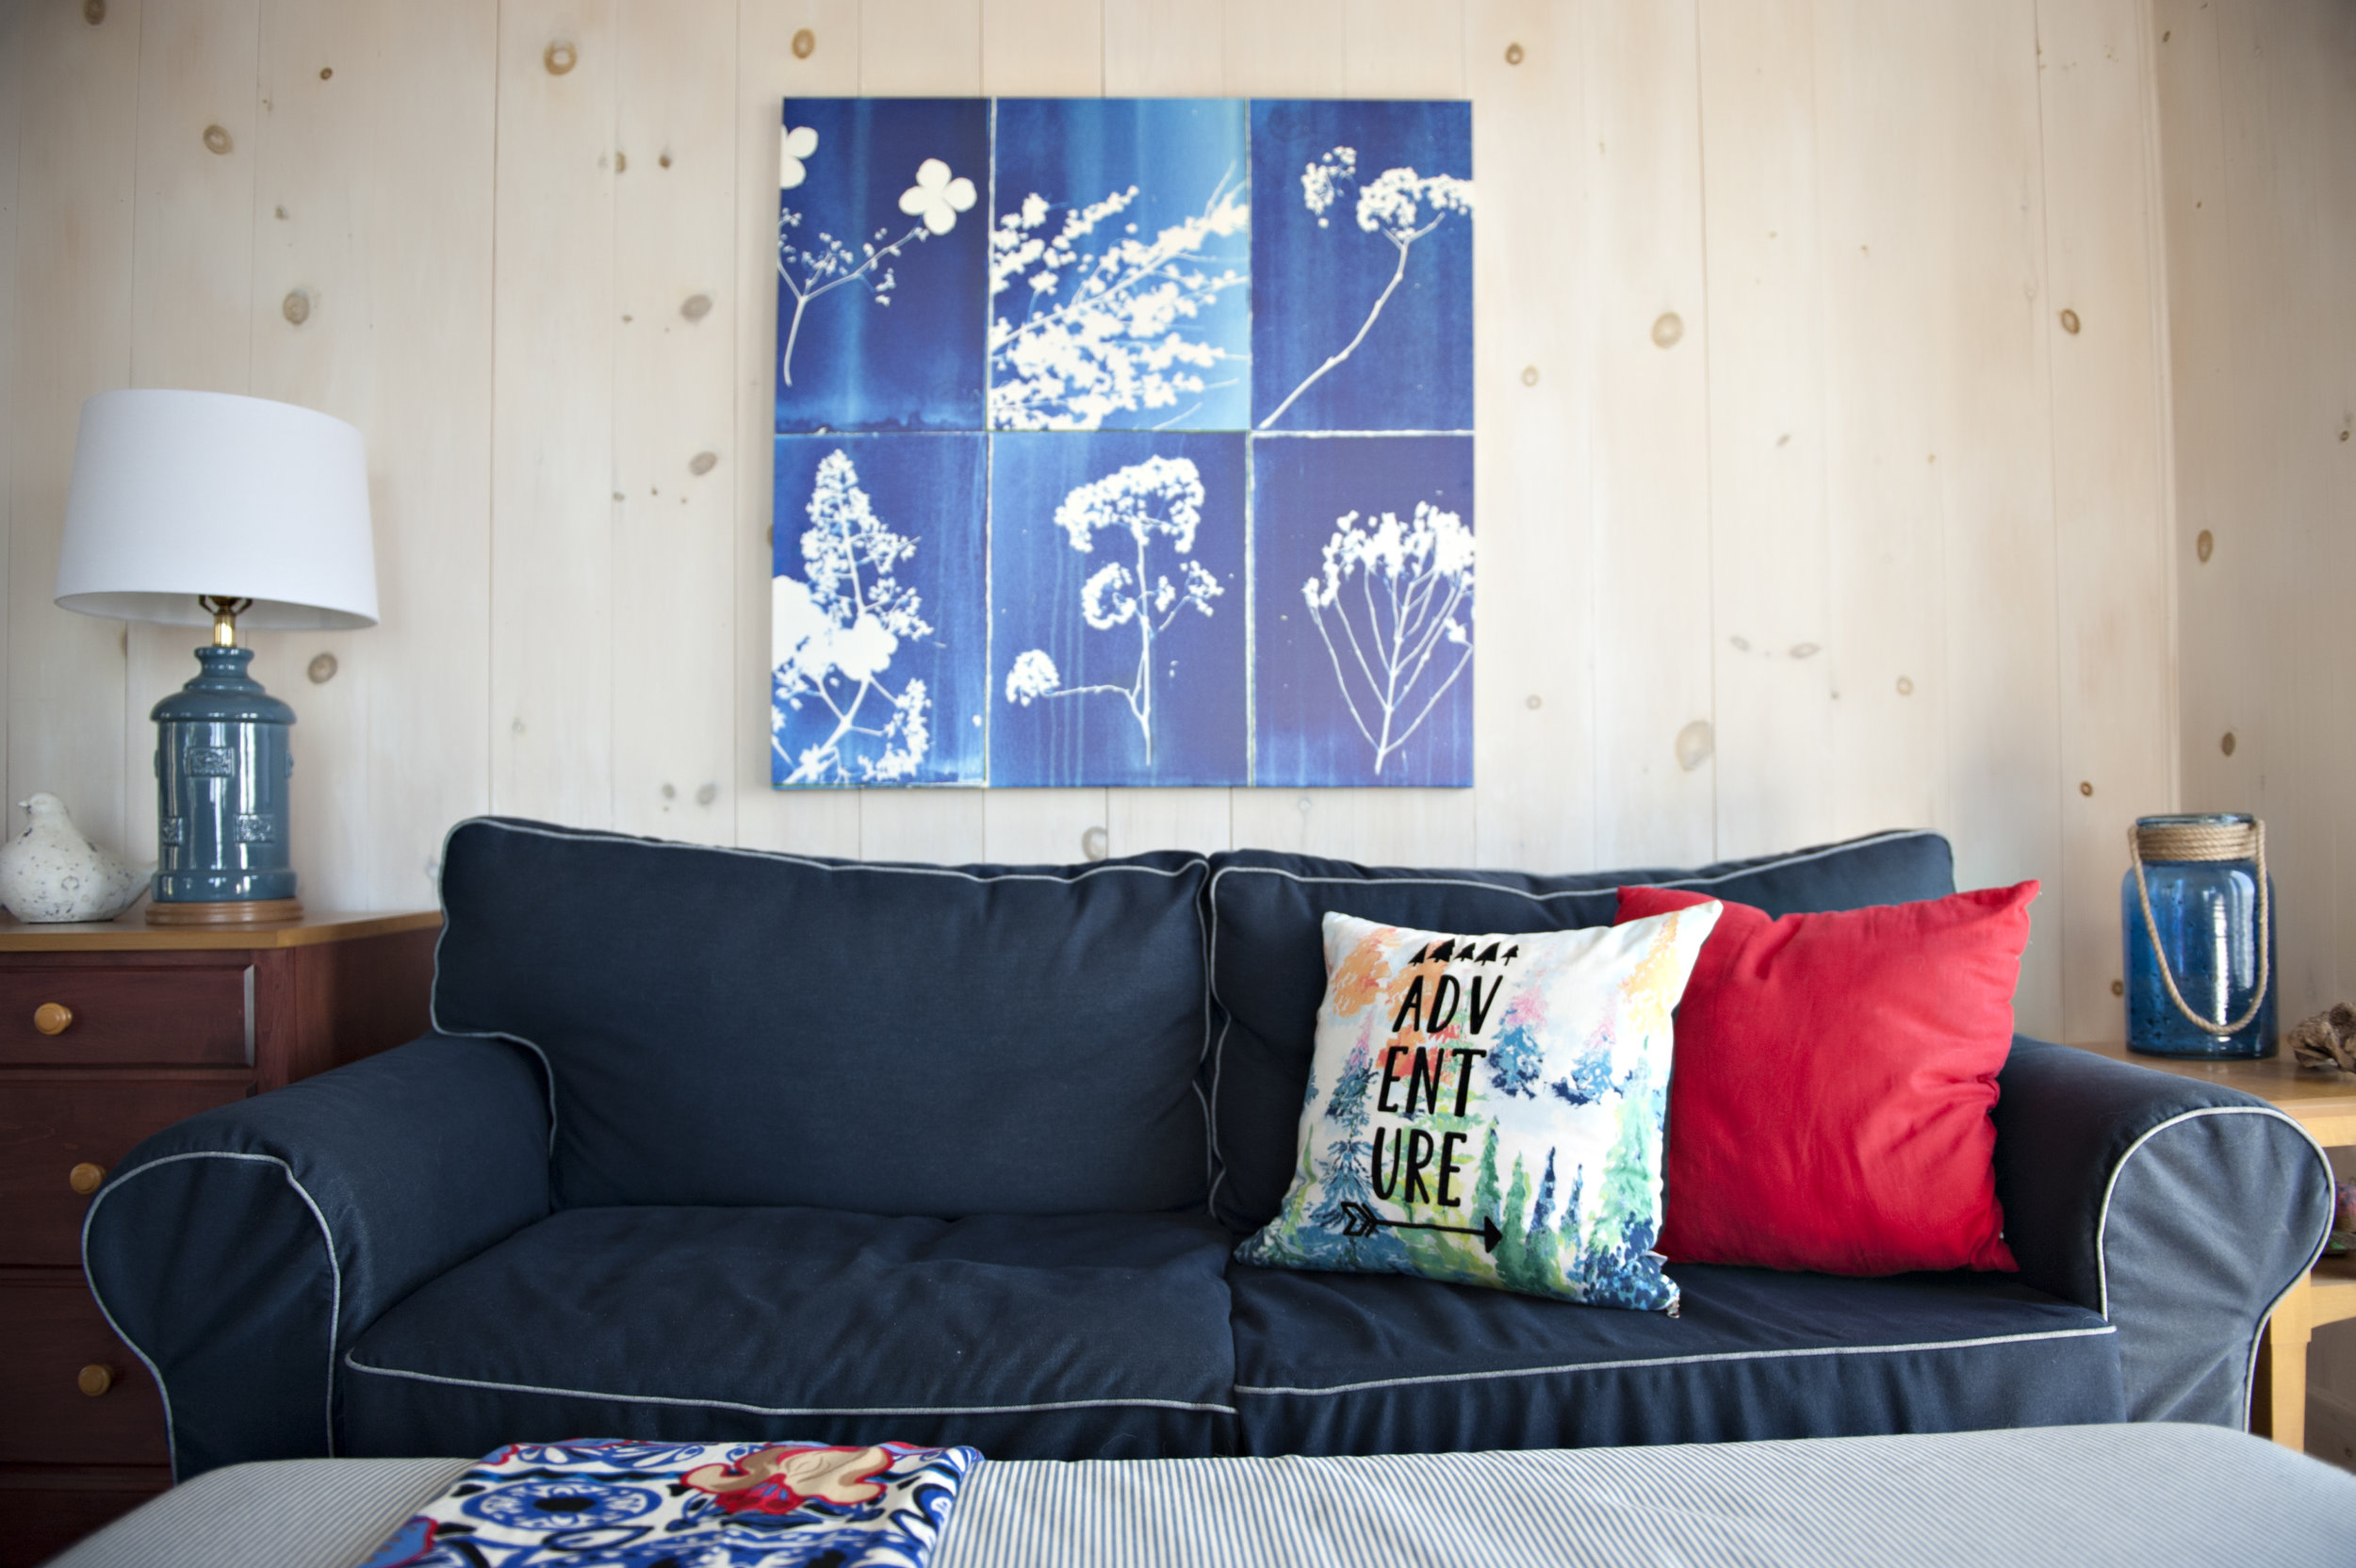 Candace-Plotz-Design-Beach-House-2-Navy-Accents-Wood-Walls